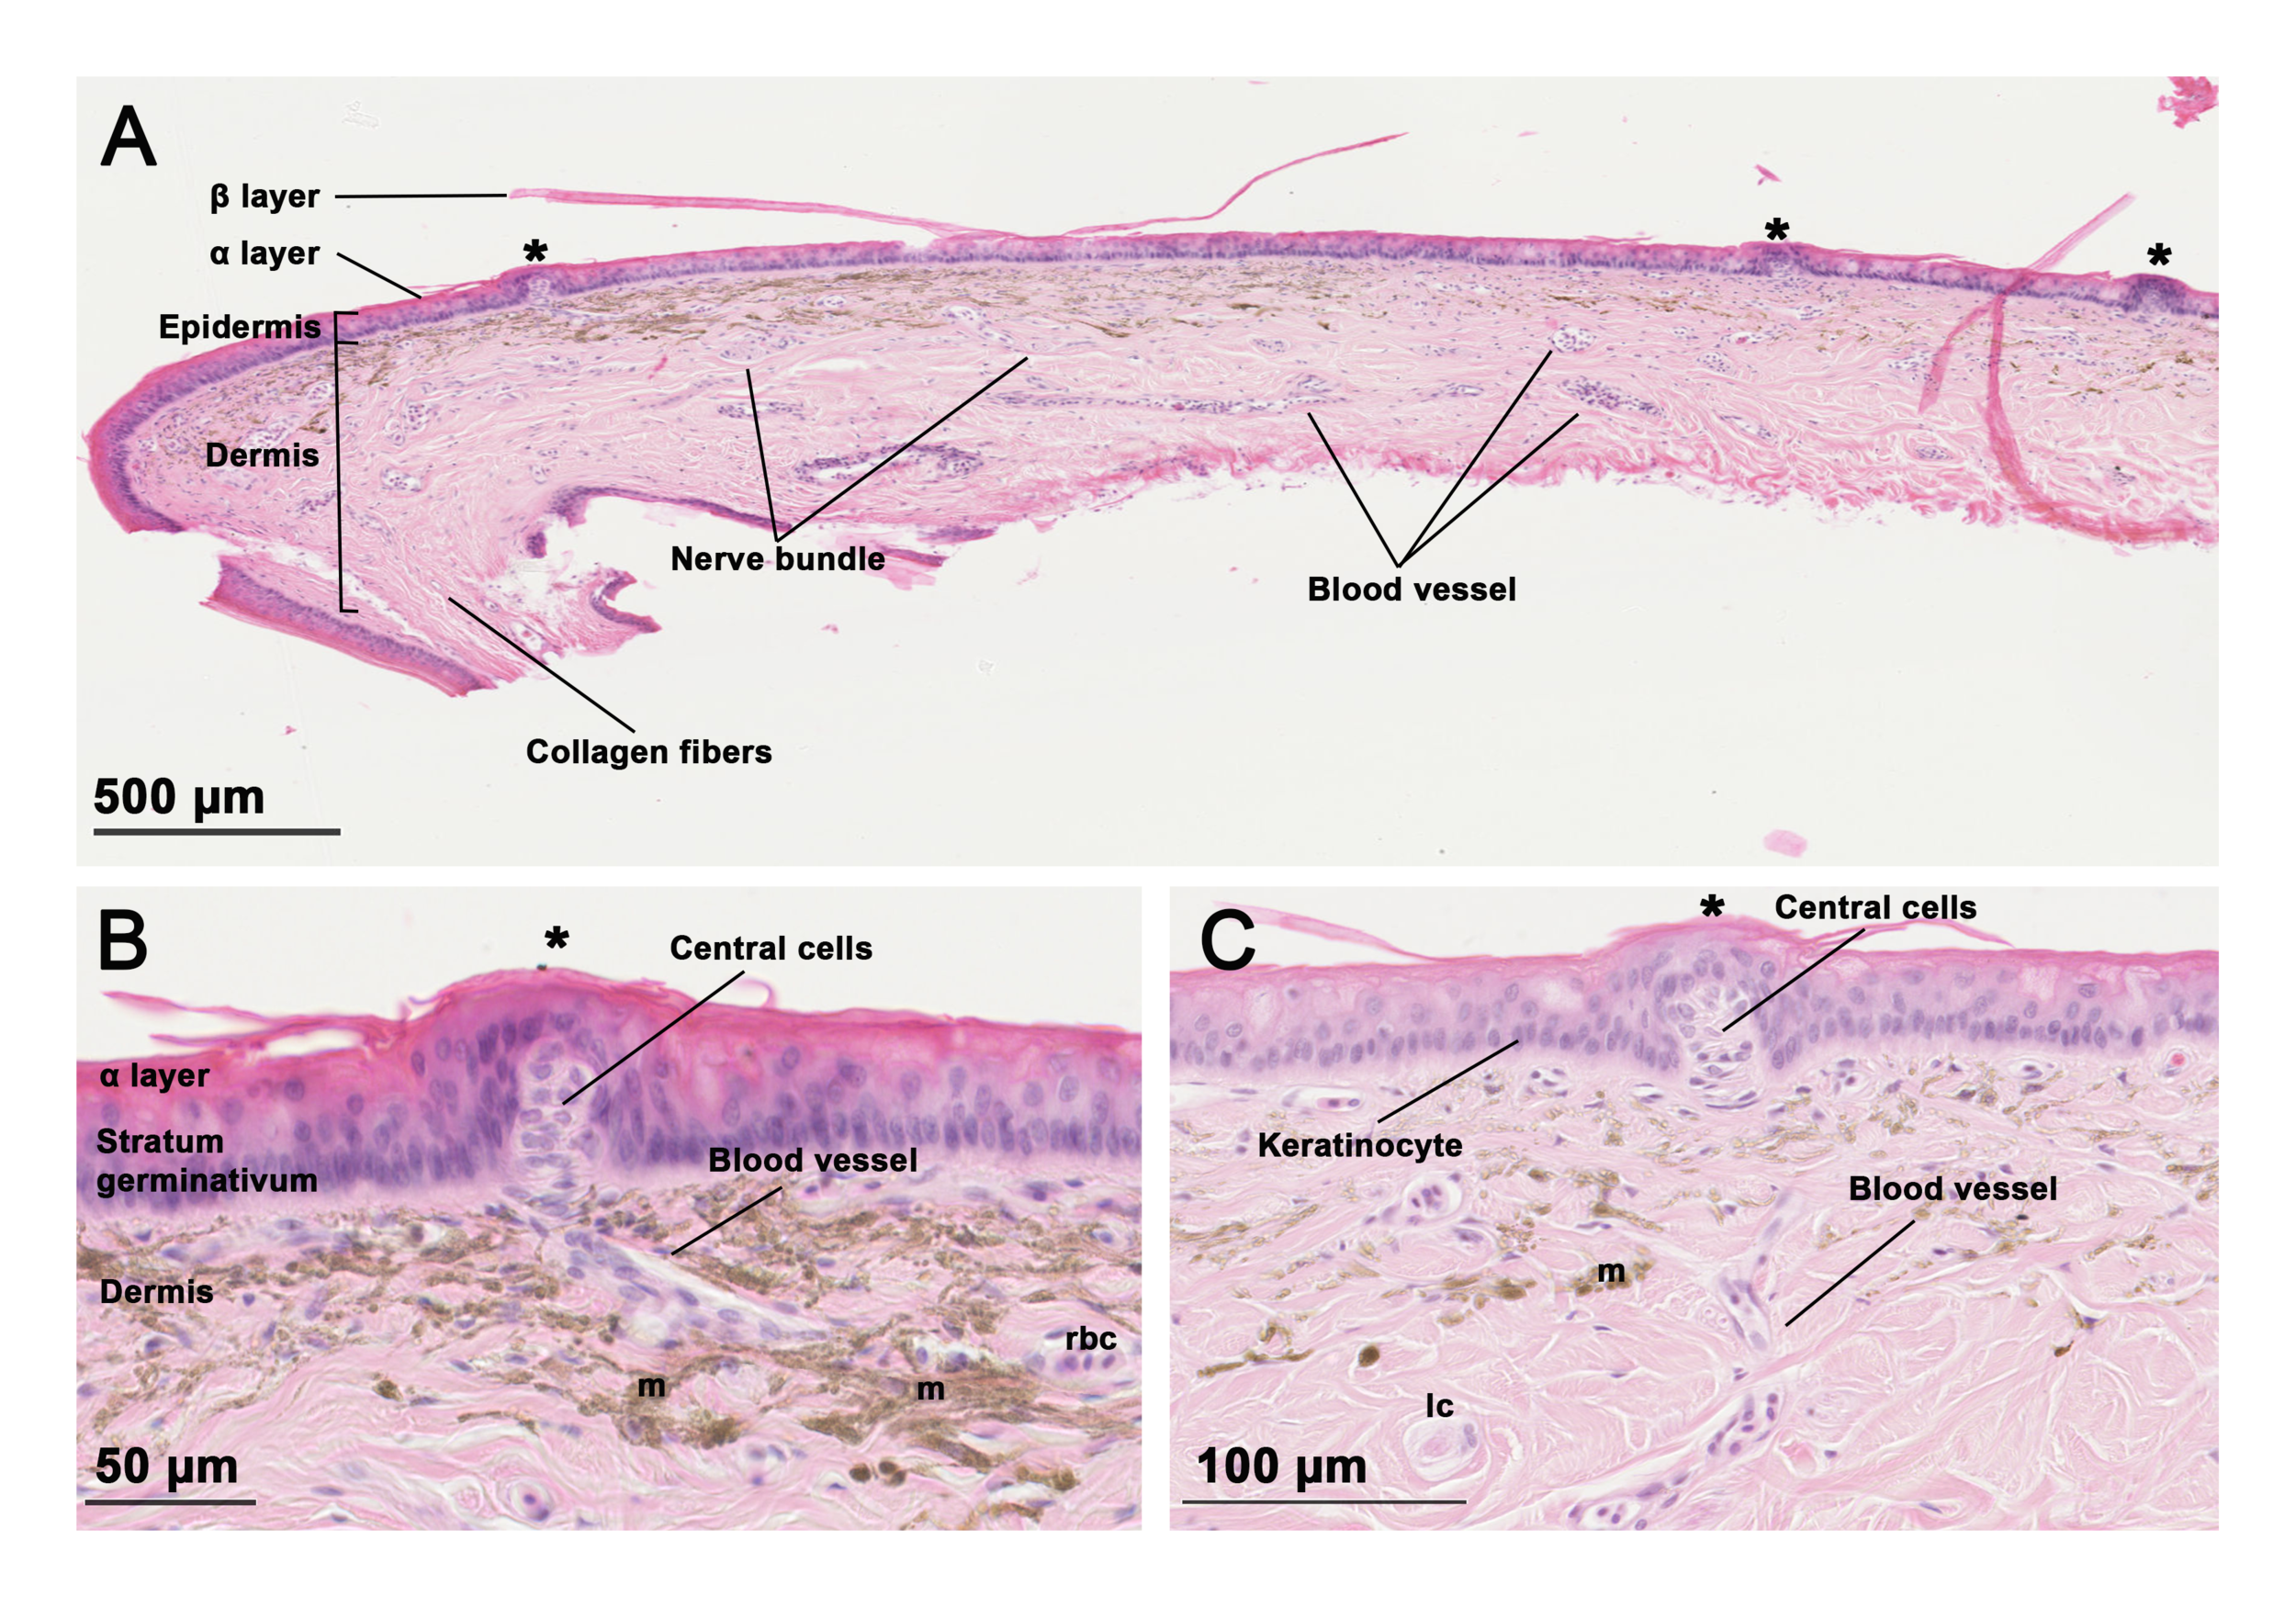 Sections of skin from head of an olive sea snake ( Aipysurus laevis ) showing the anatomy and cell types of scale 'sensilla'.  Image credit: Crowe-Riddell, et al. (2019), Royal Society Open Science, doi: 10.1098/rsos.182022.